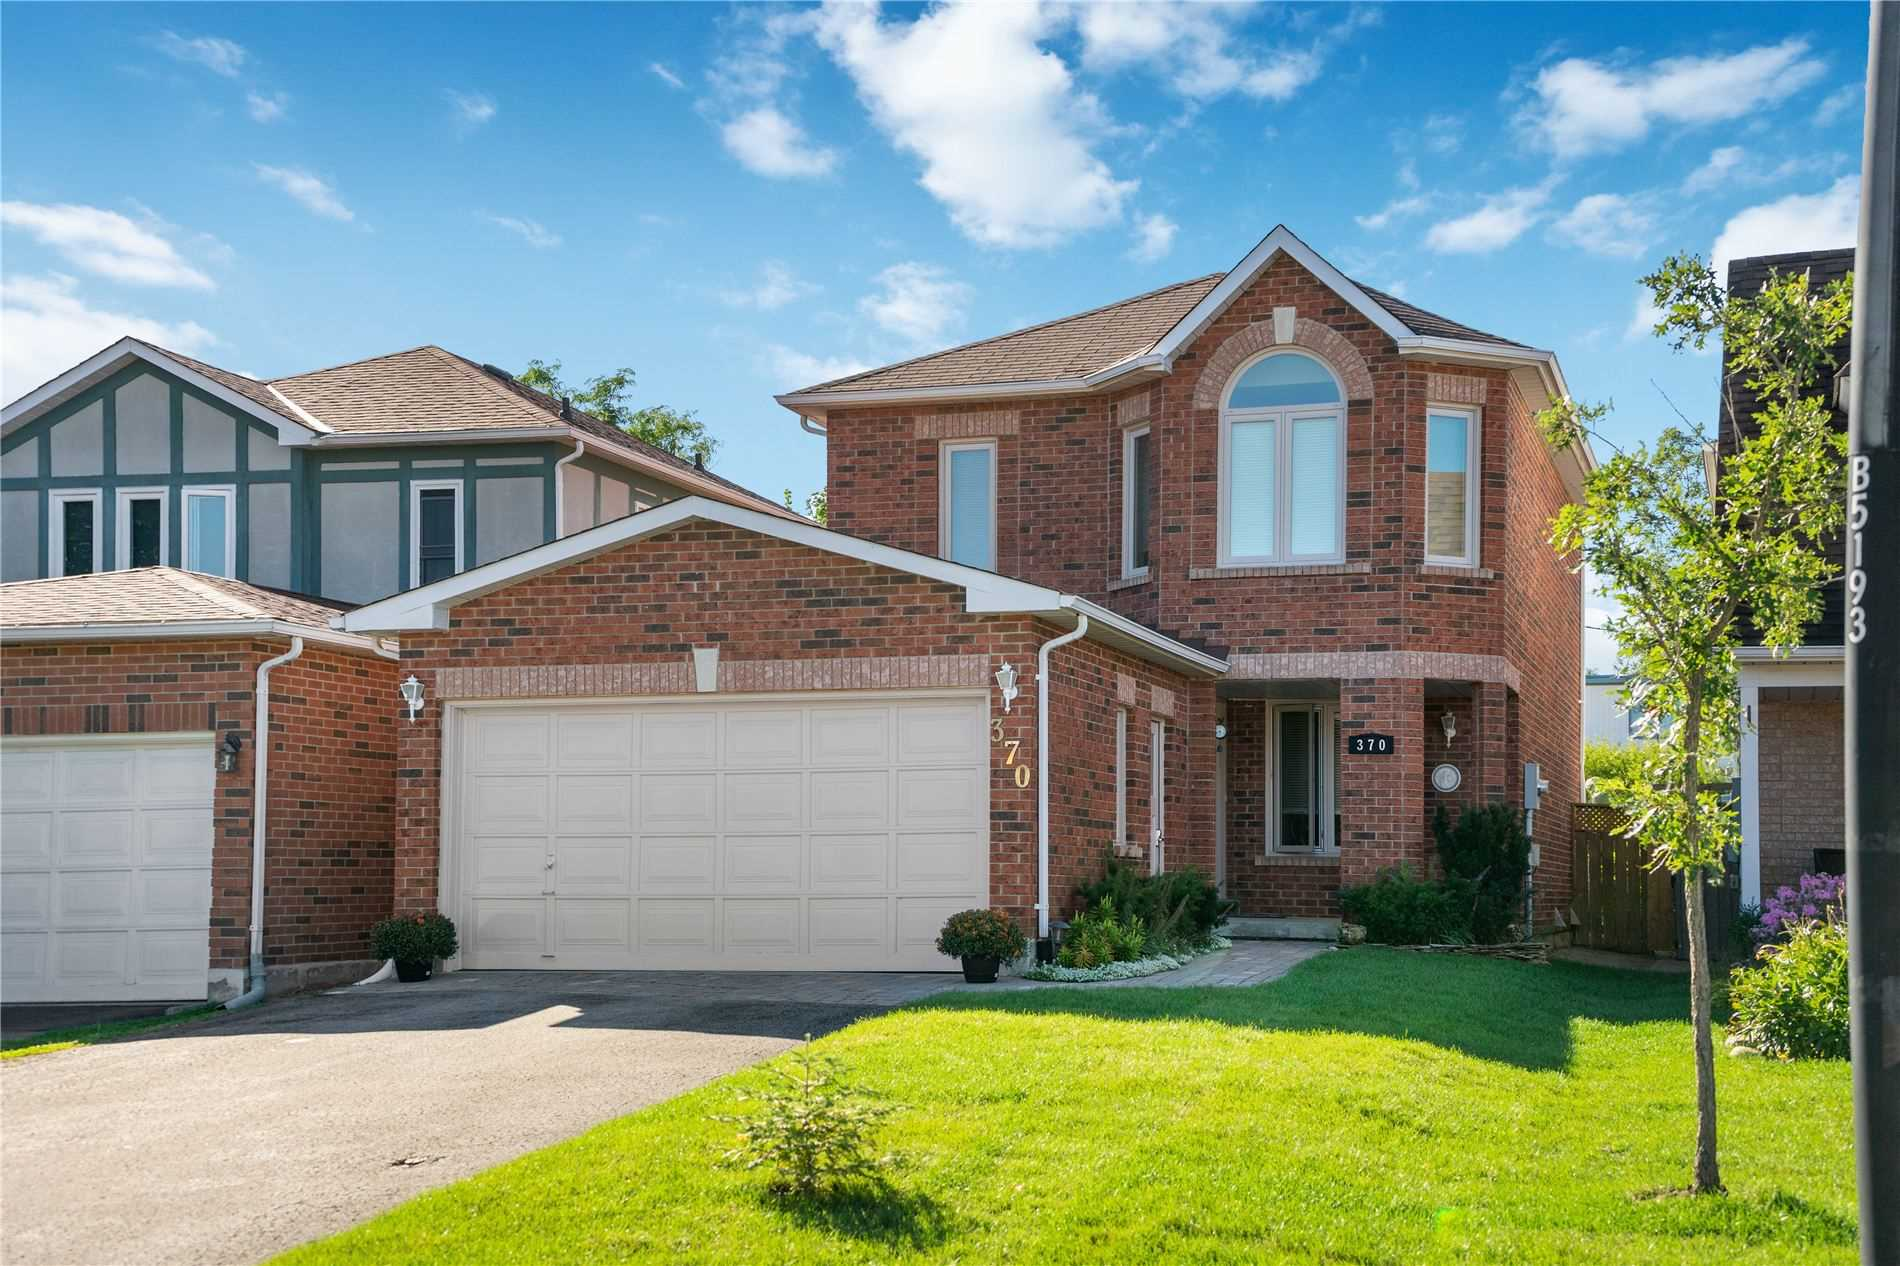 370 Pickering Cres, Newmarket, Ontario L3Y8G7, 3 Bedrooms Bedrooms, 6 Rooms Rooms,4 BathroomsBathrooms,Detached,For Sale,Pickering,N4900730